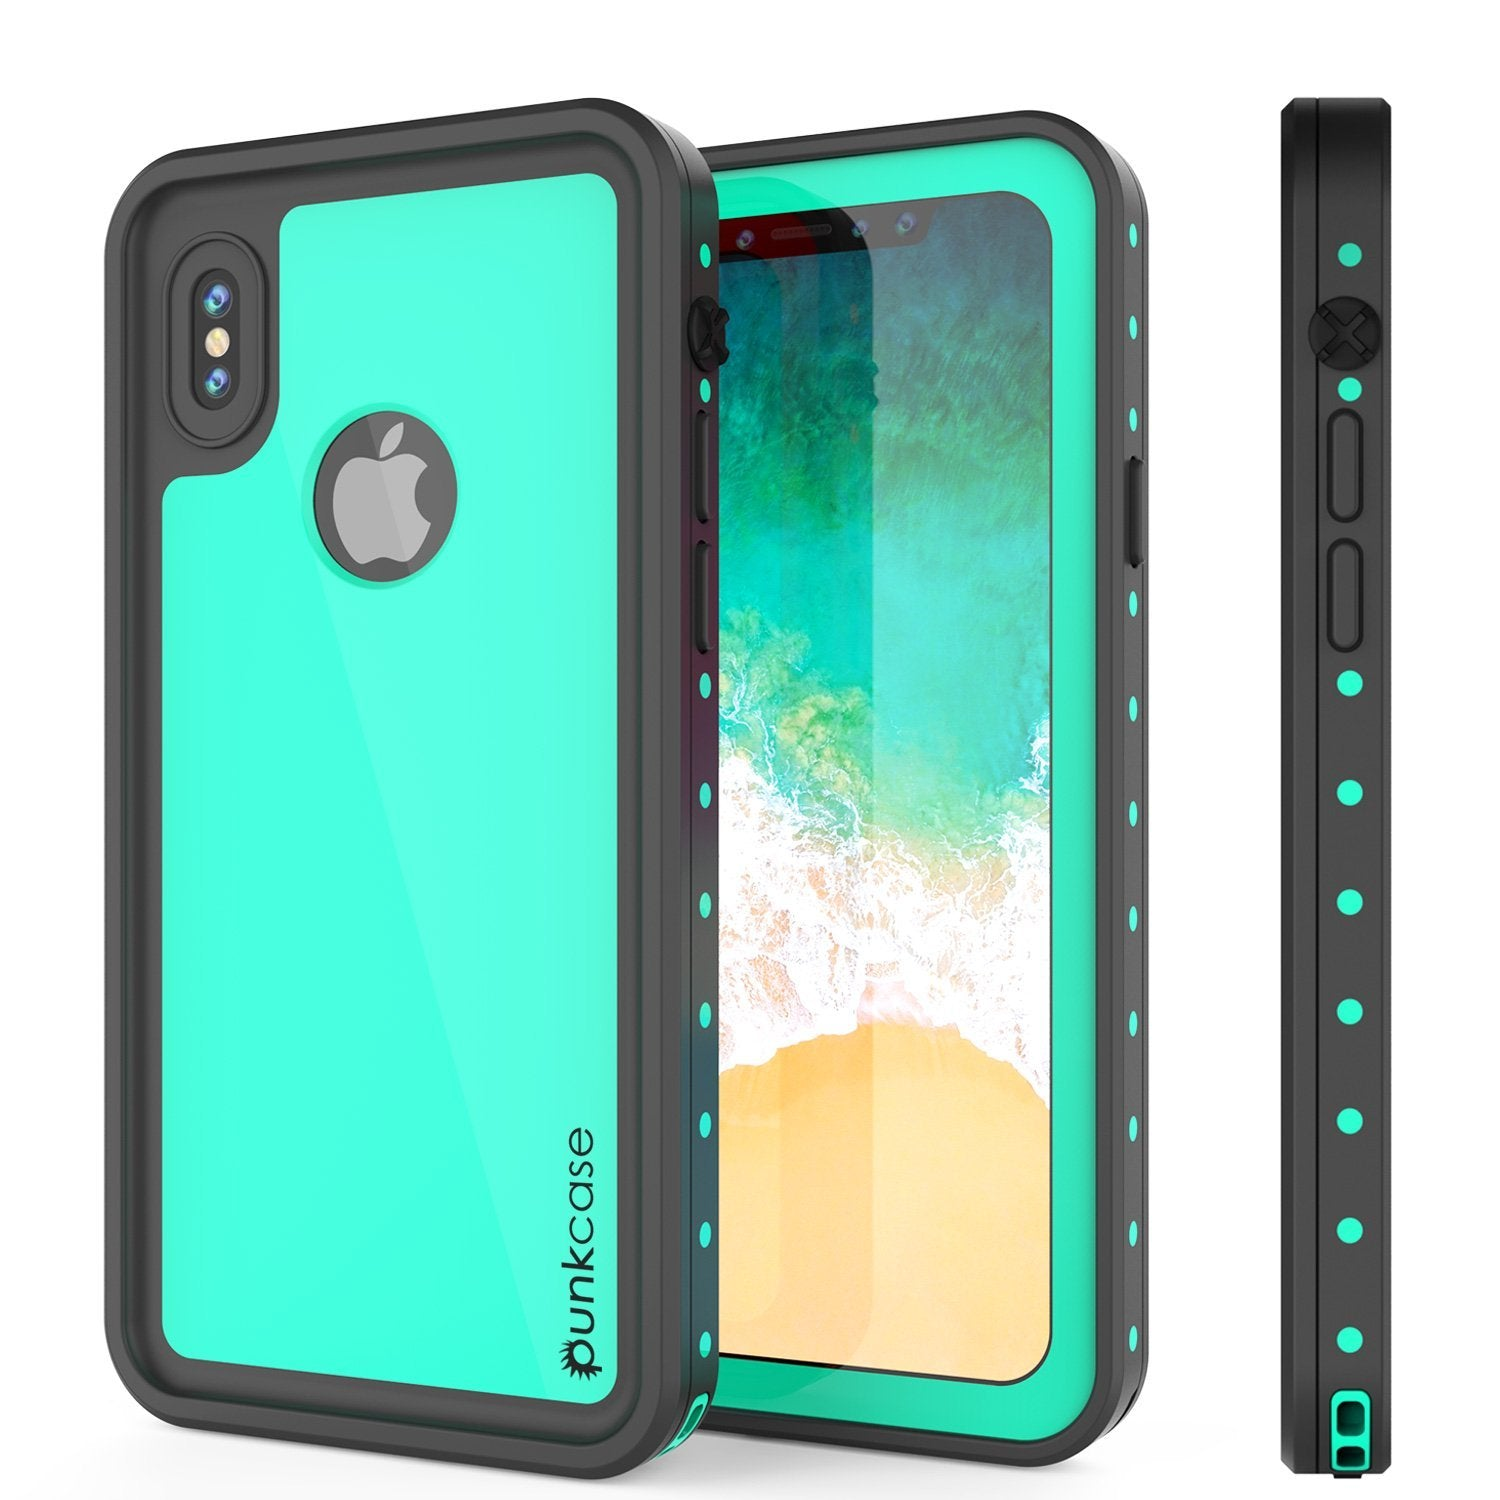 iPhone XS Max Waterproof IP68 Case, Punkcase [Teal] [StudStar Series] [Slim Fit] [Dirtproof]